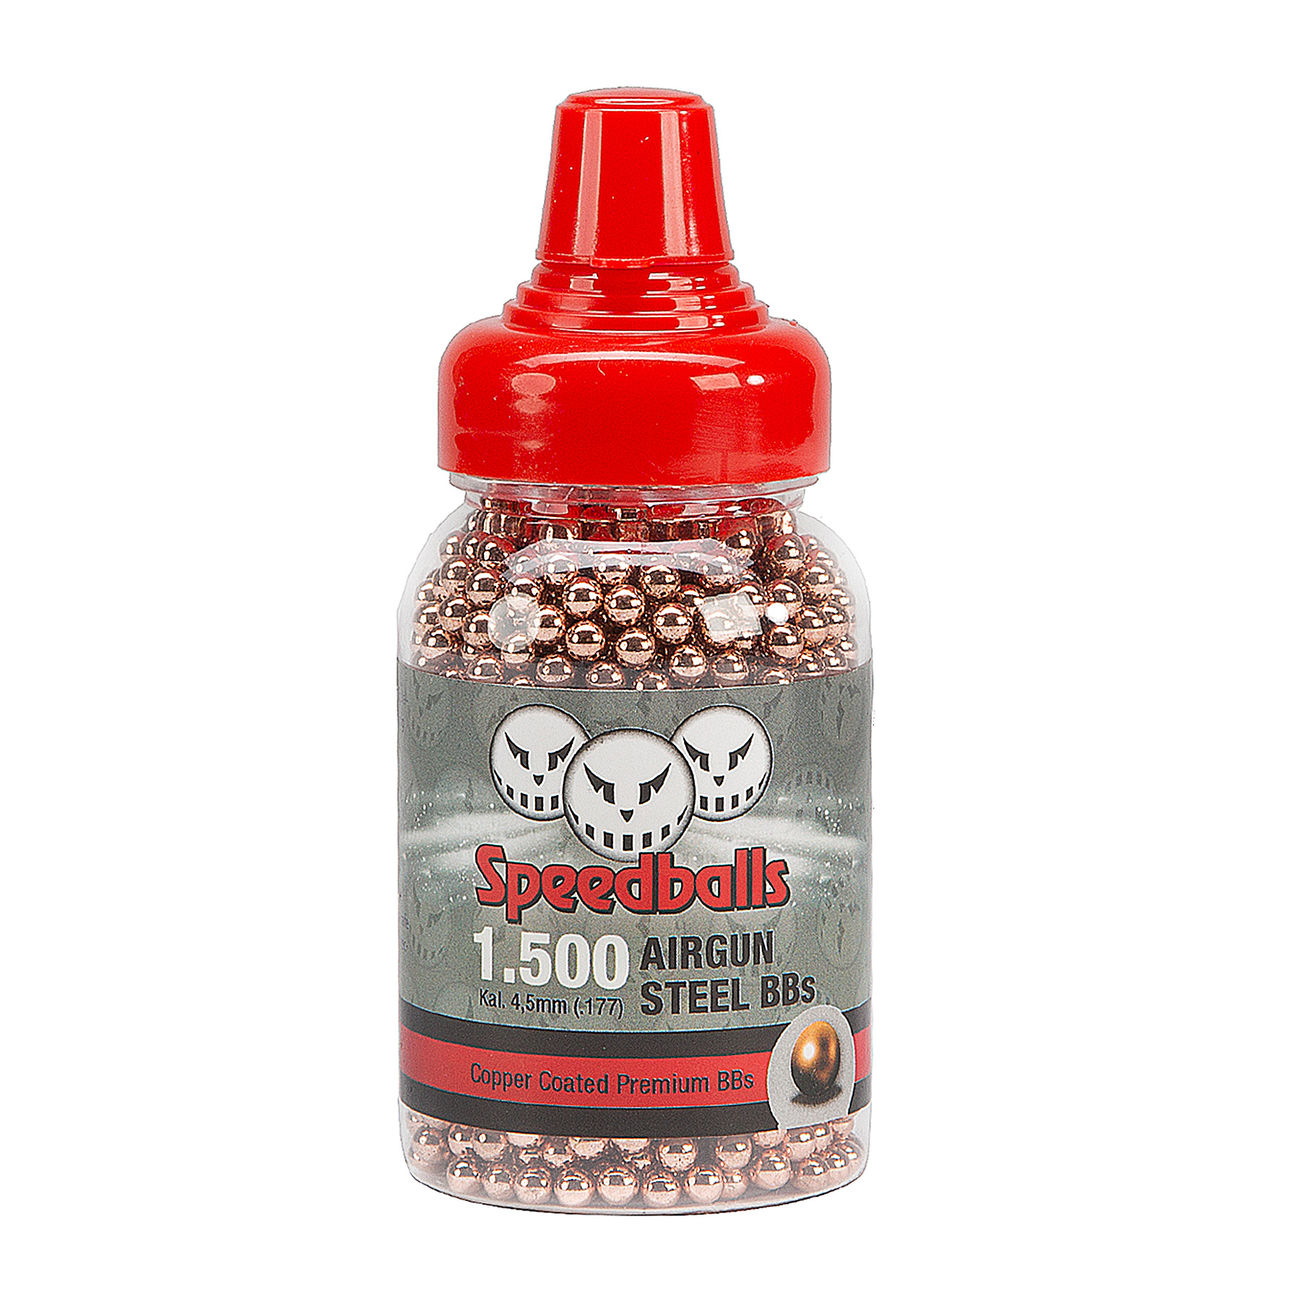 Speedballs Copper Coated Premium Steel-BBs Kal. 4,5 mm 1500 Schuss 0